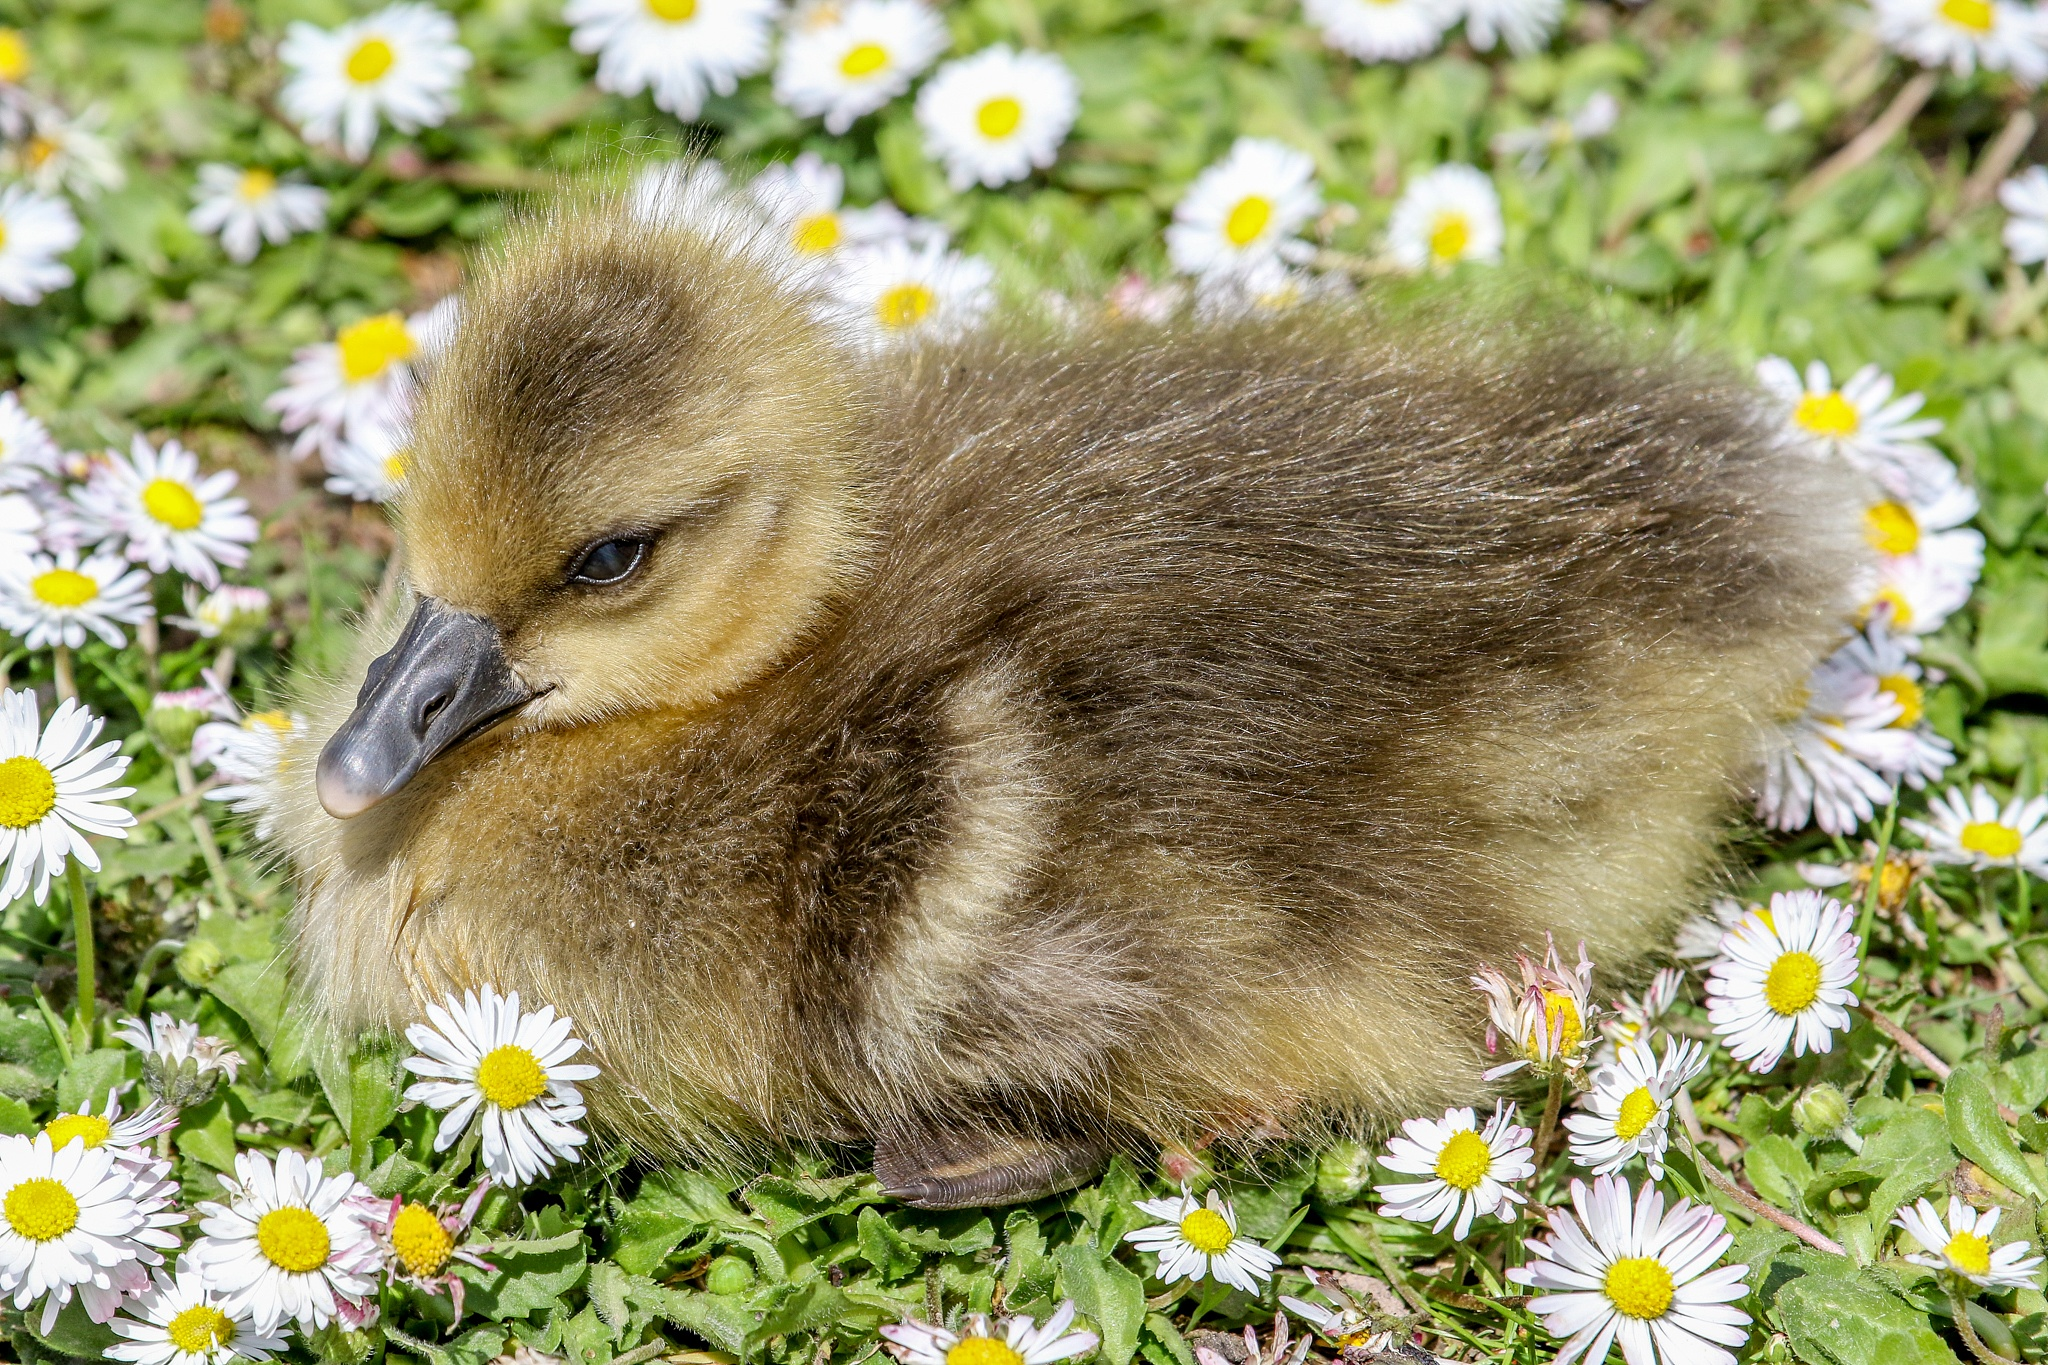 Young gosling by MarkBriscoe